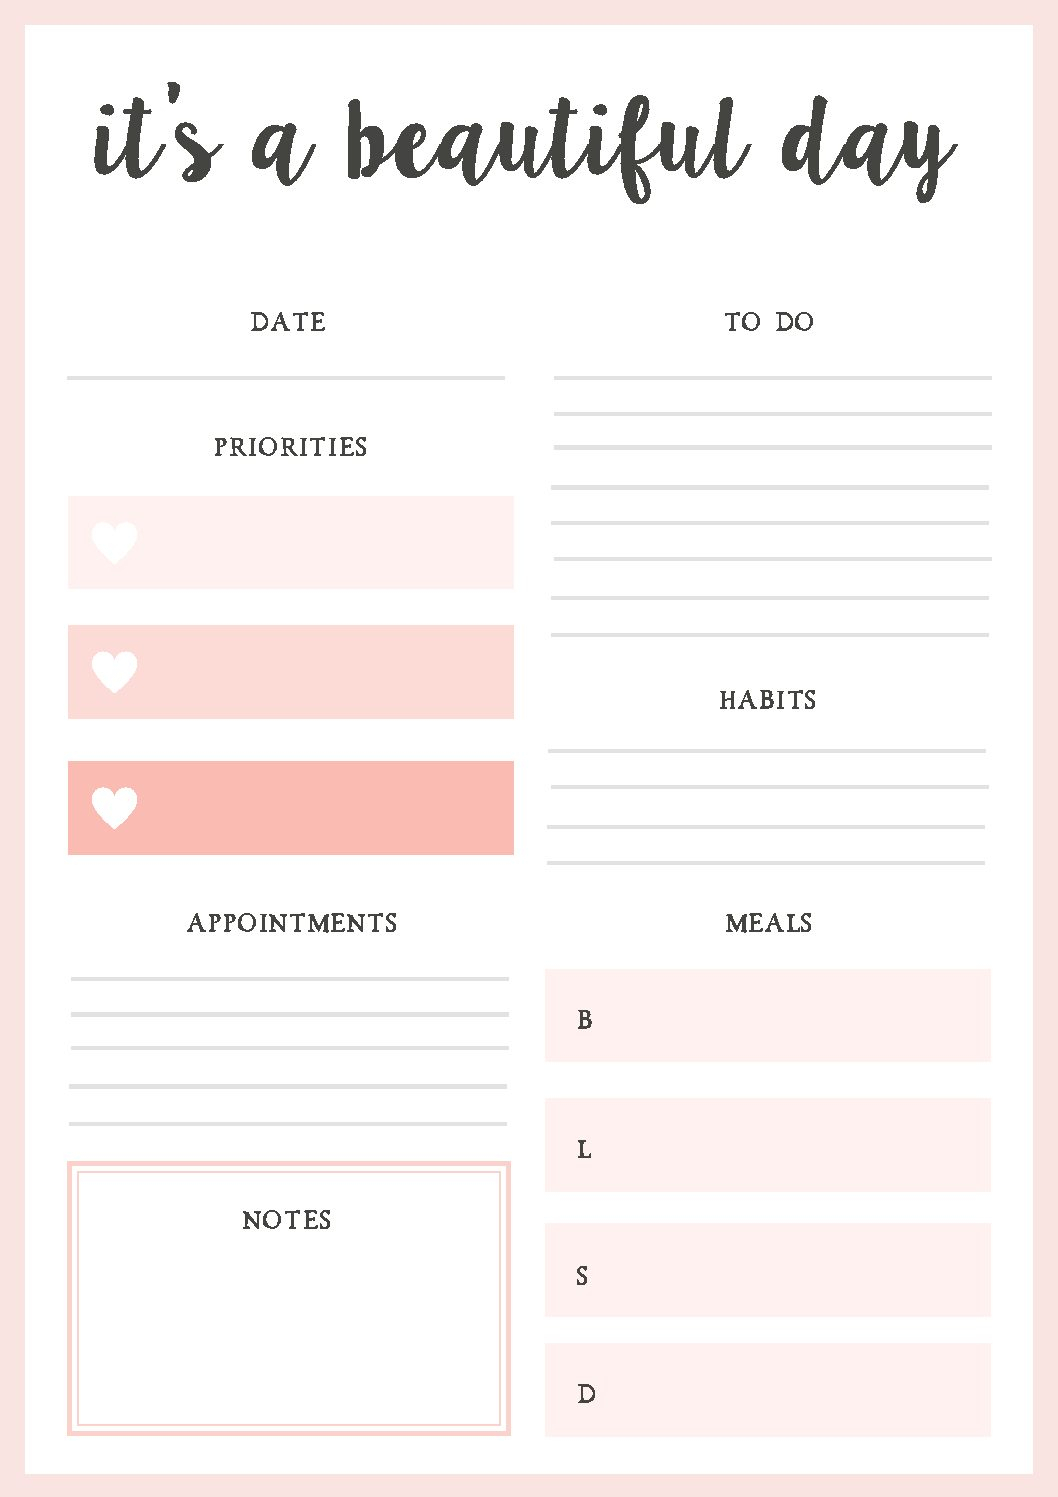 018 Daily Planner Template Printable Personal Pdf Fantastic Ideas regarding Daily Planner Template Printable Free